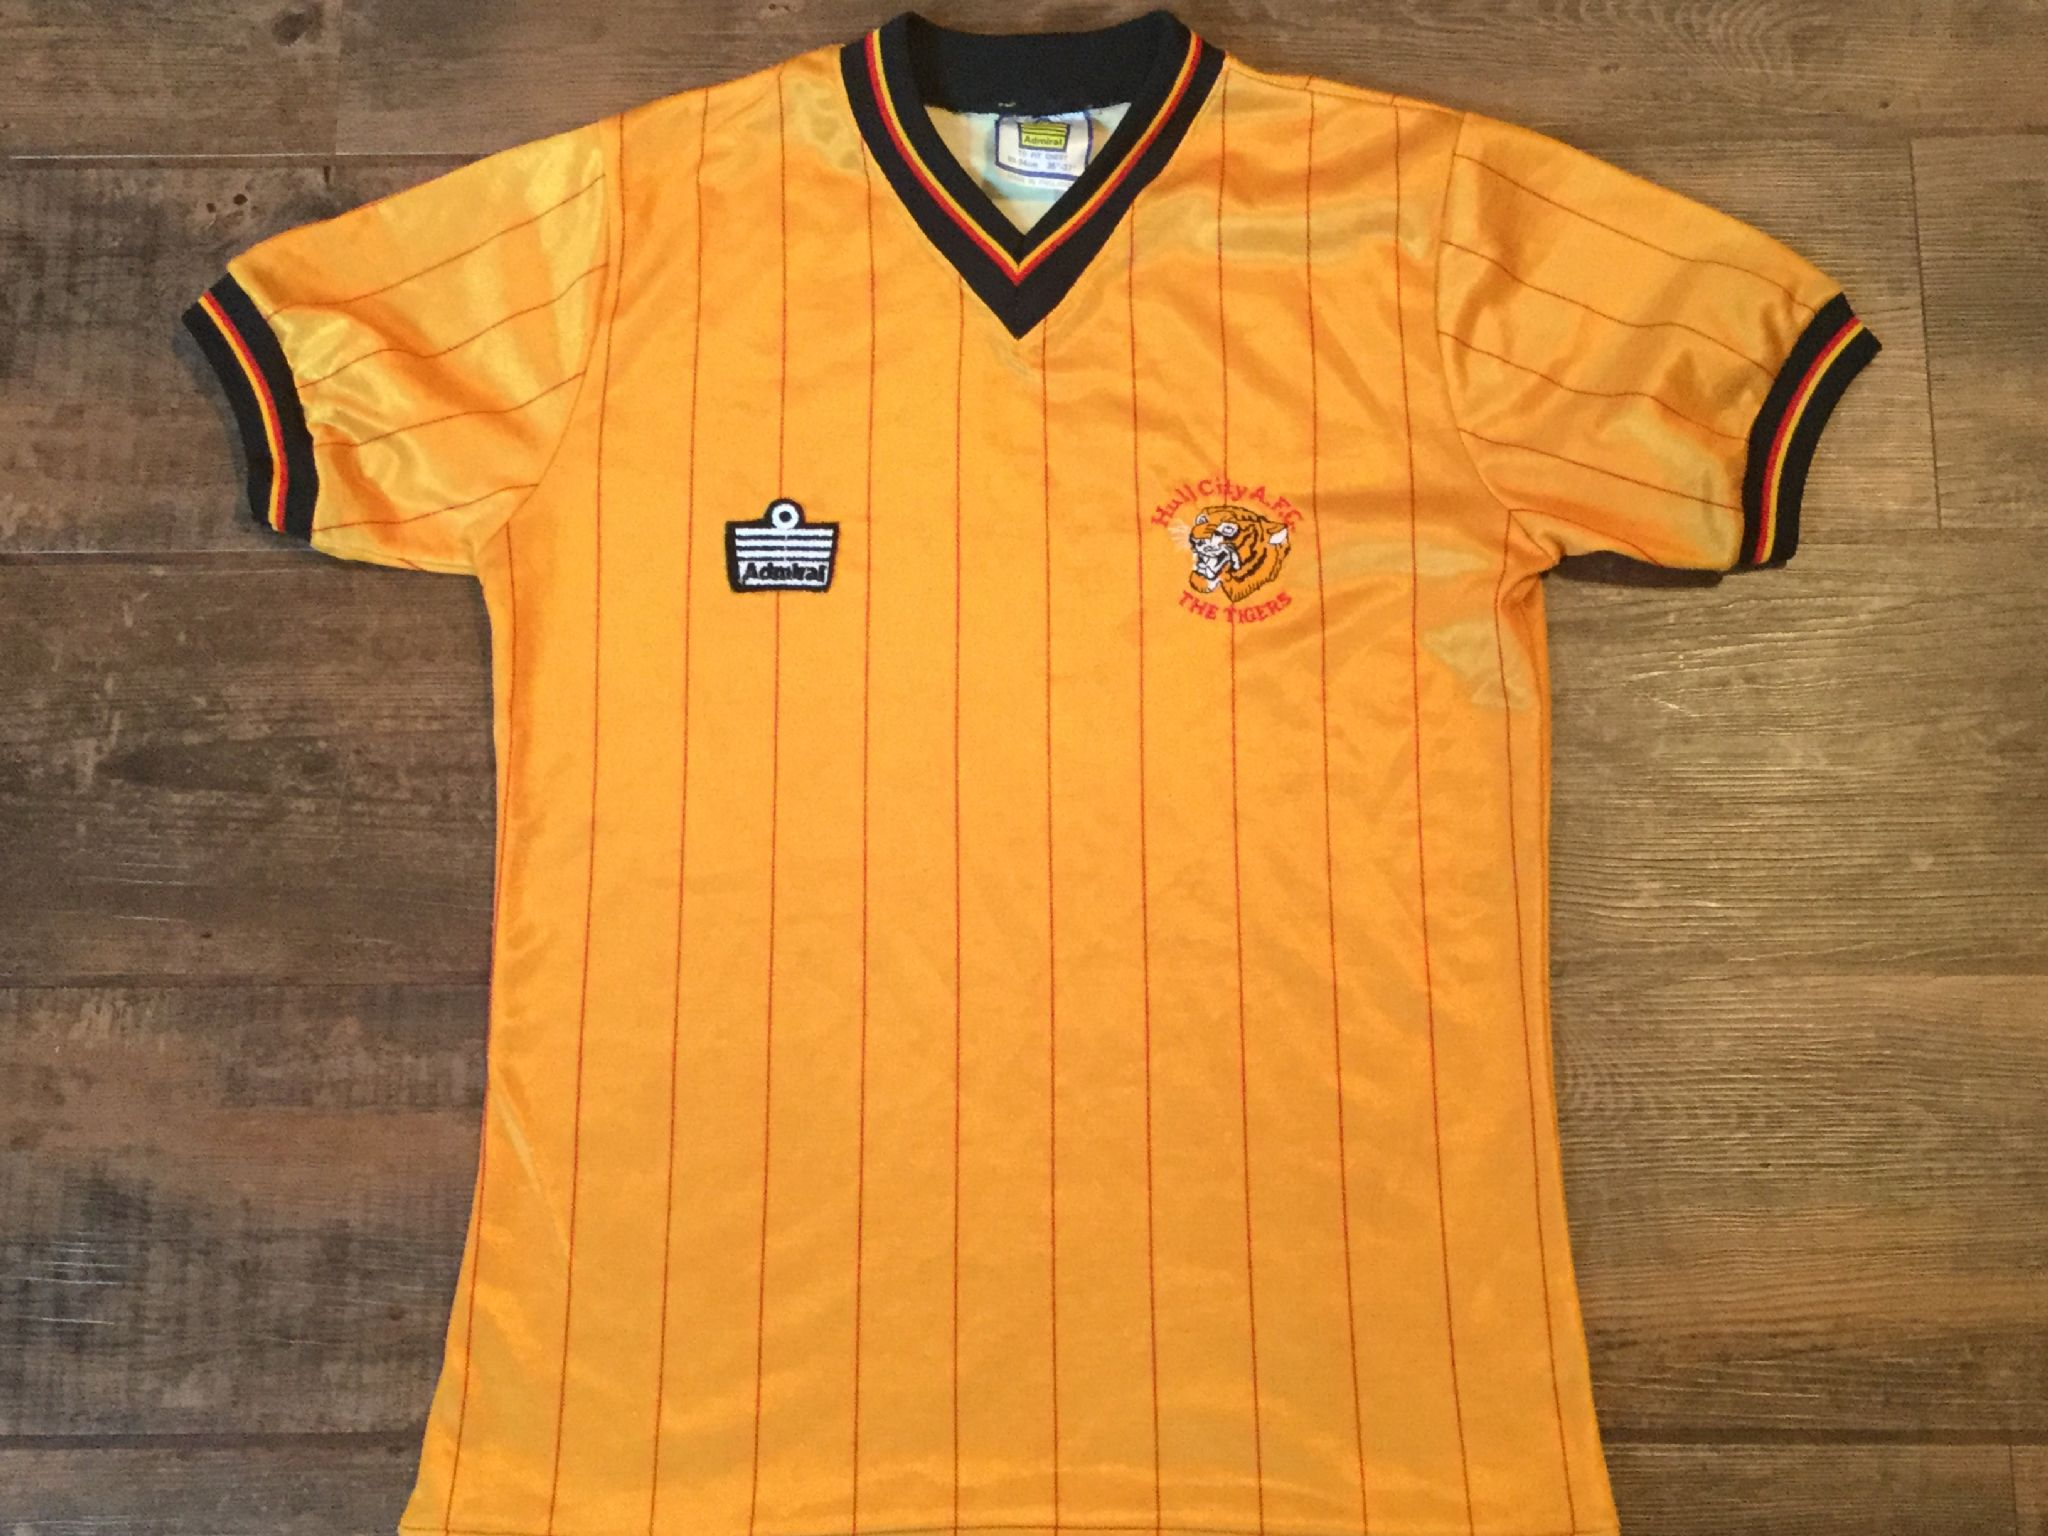 1982 1983 Hull City Home Football Shirt Top Adults Small 1980s Jersey 5eea6c746